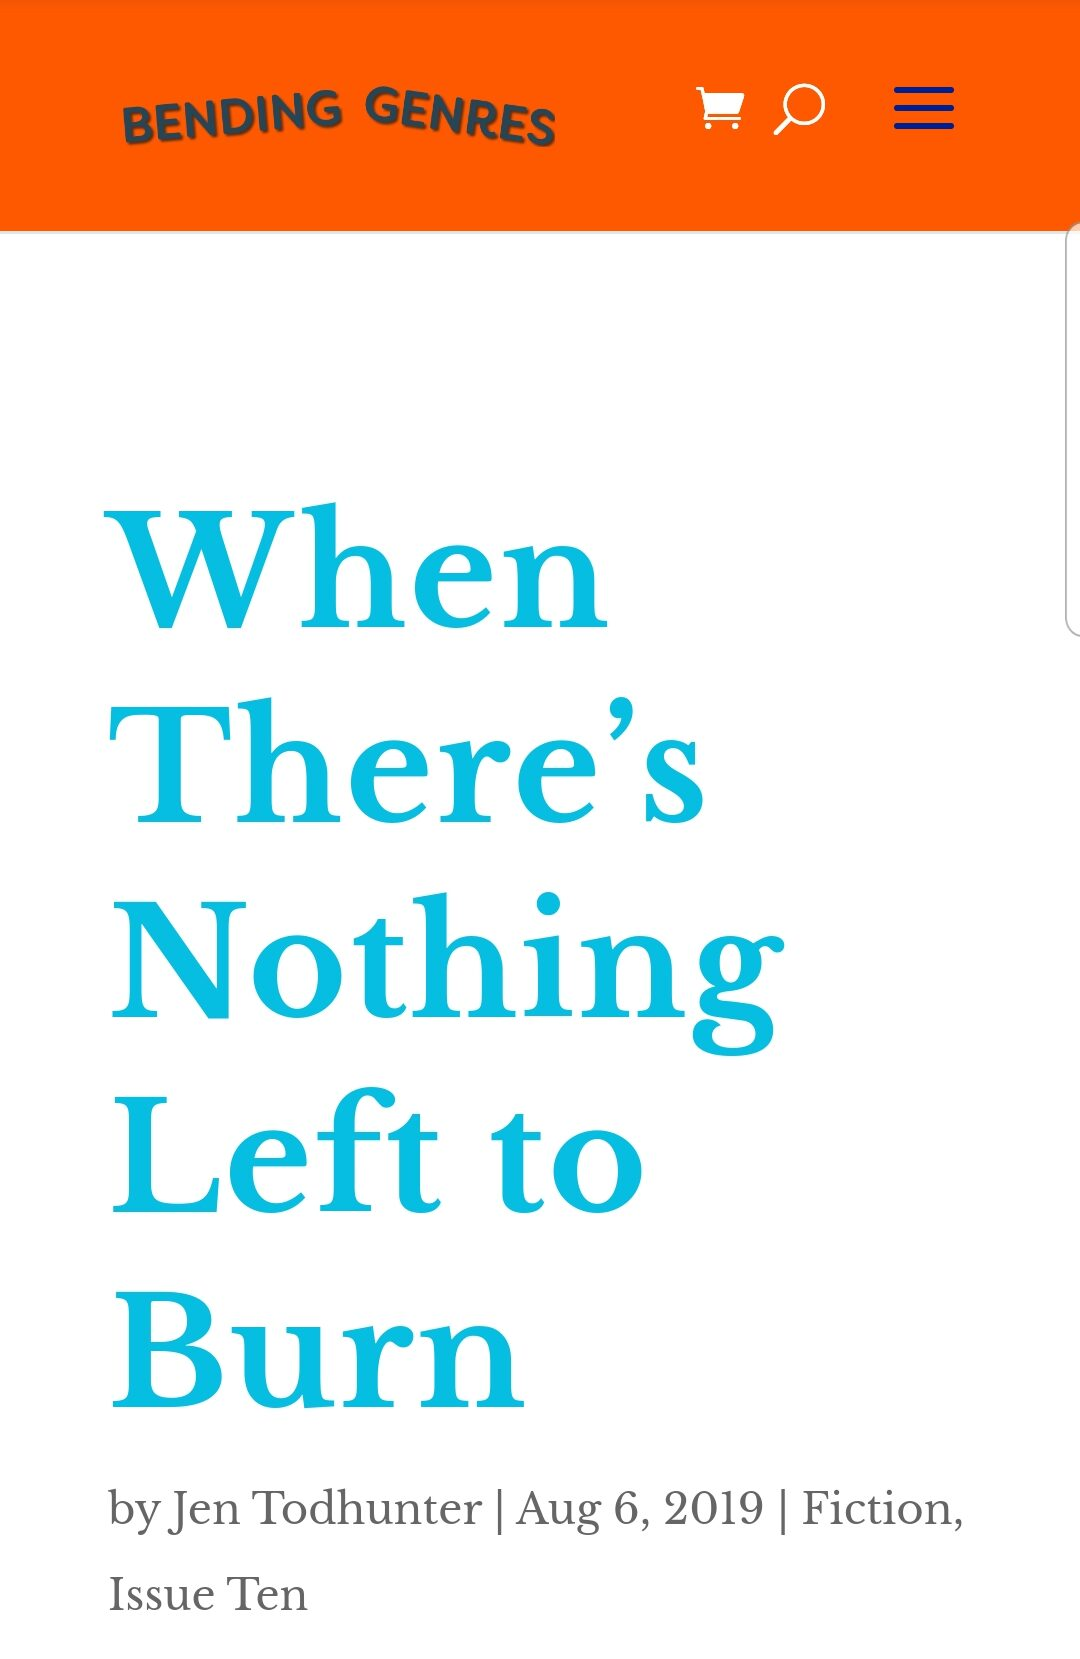 when there's nothing left to burn | bending genres | fiction